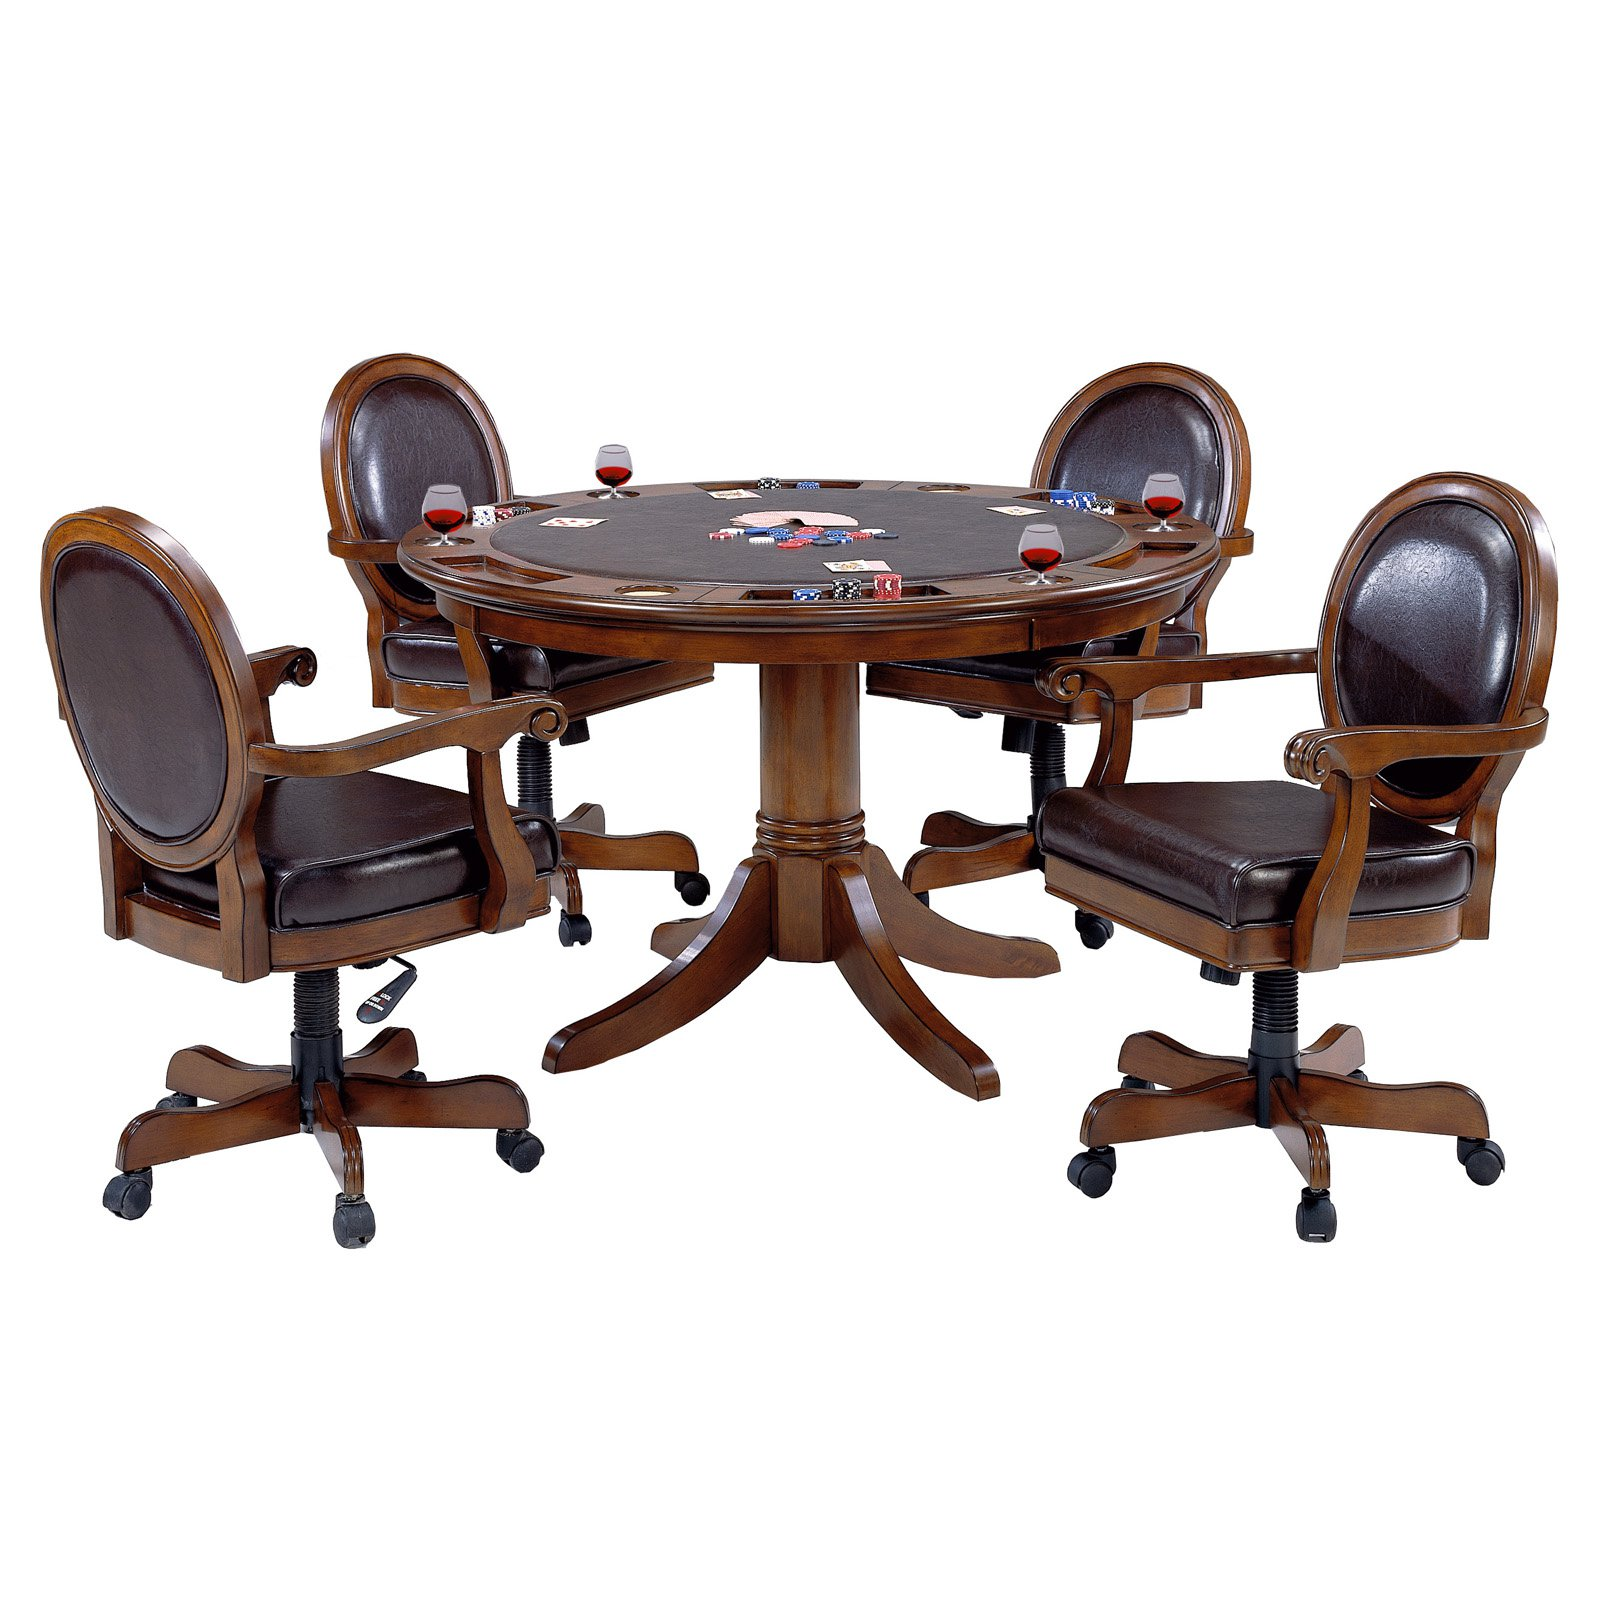 Hillsdale Warrington 5 Piece Game Table Set by Hillsdale